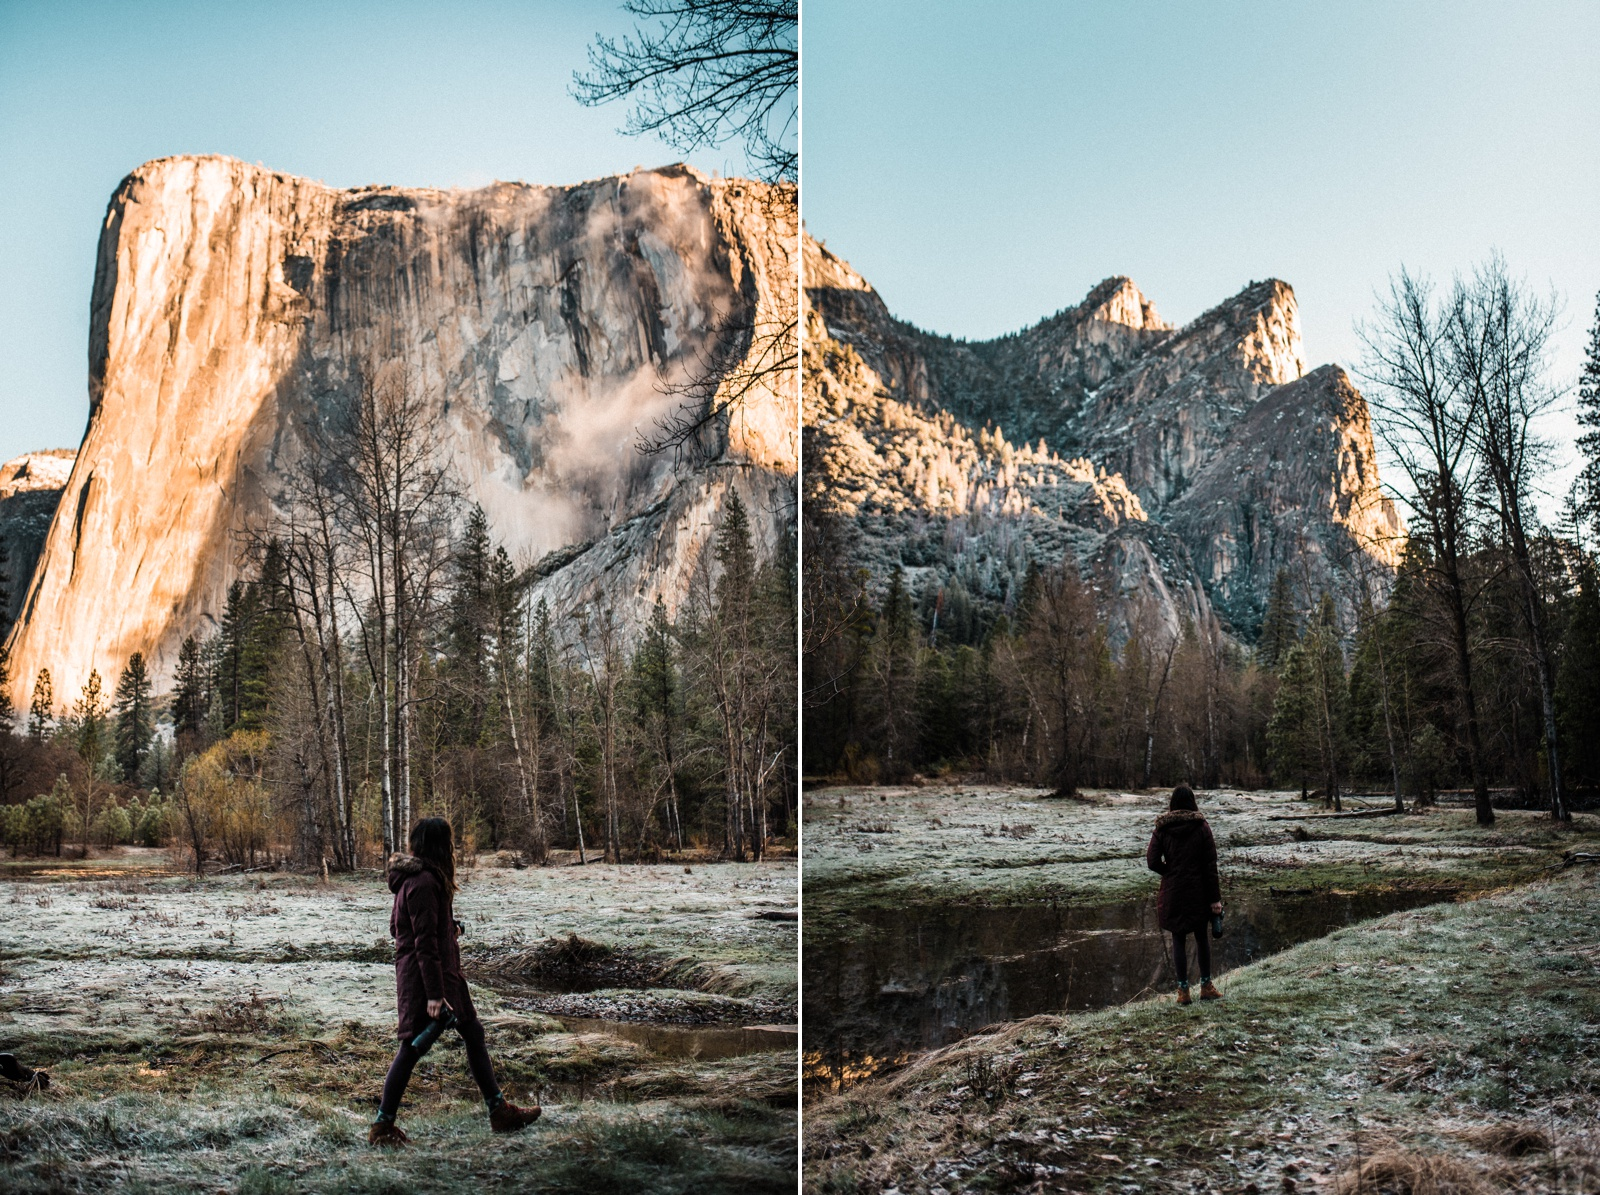 Yosemite in April